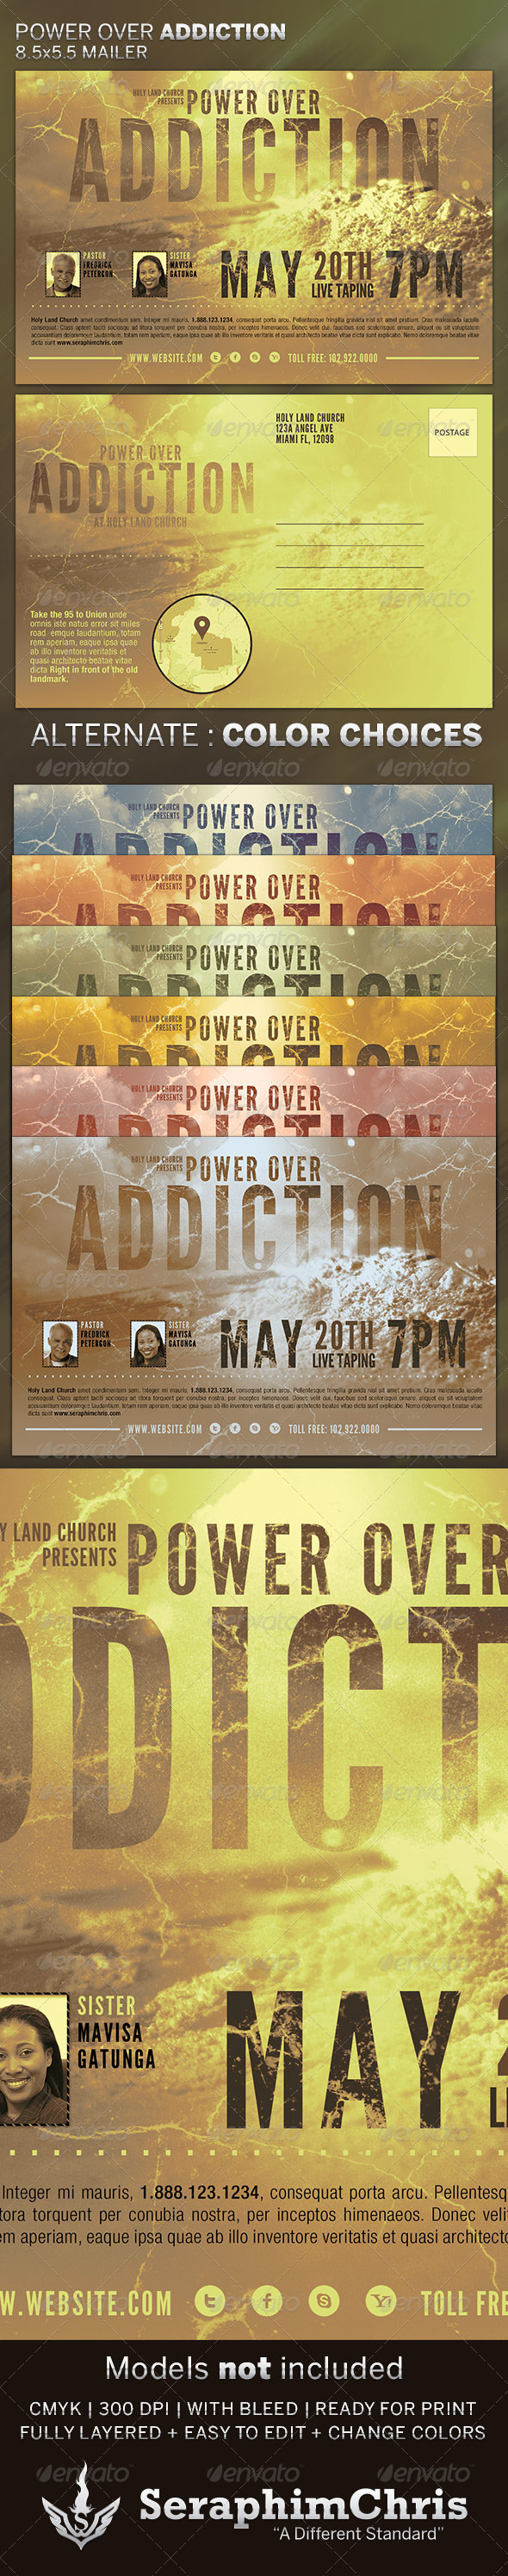 Power over Addiction: Church Flyer Template - Church Flyers